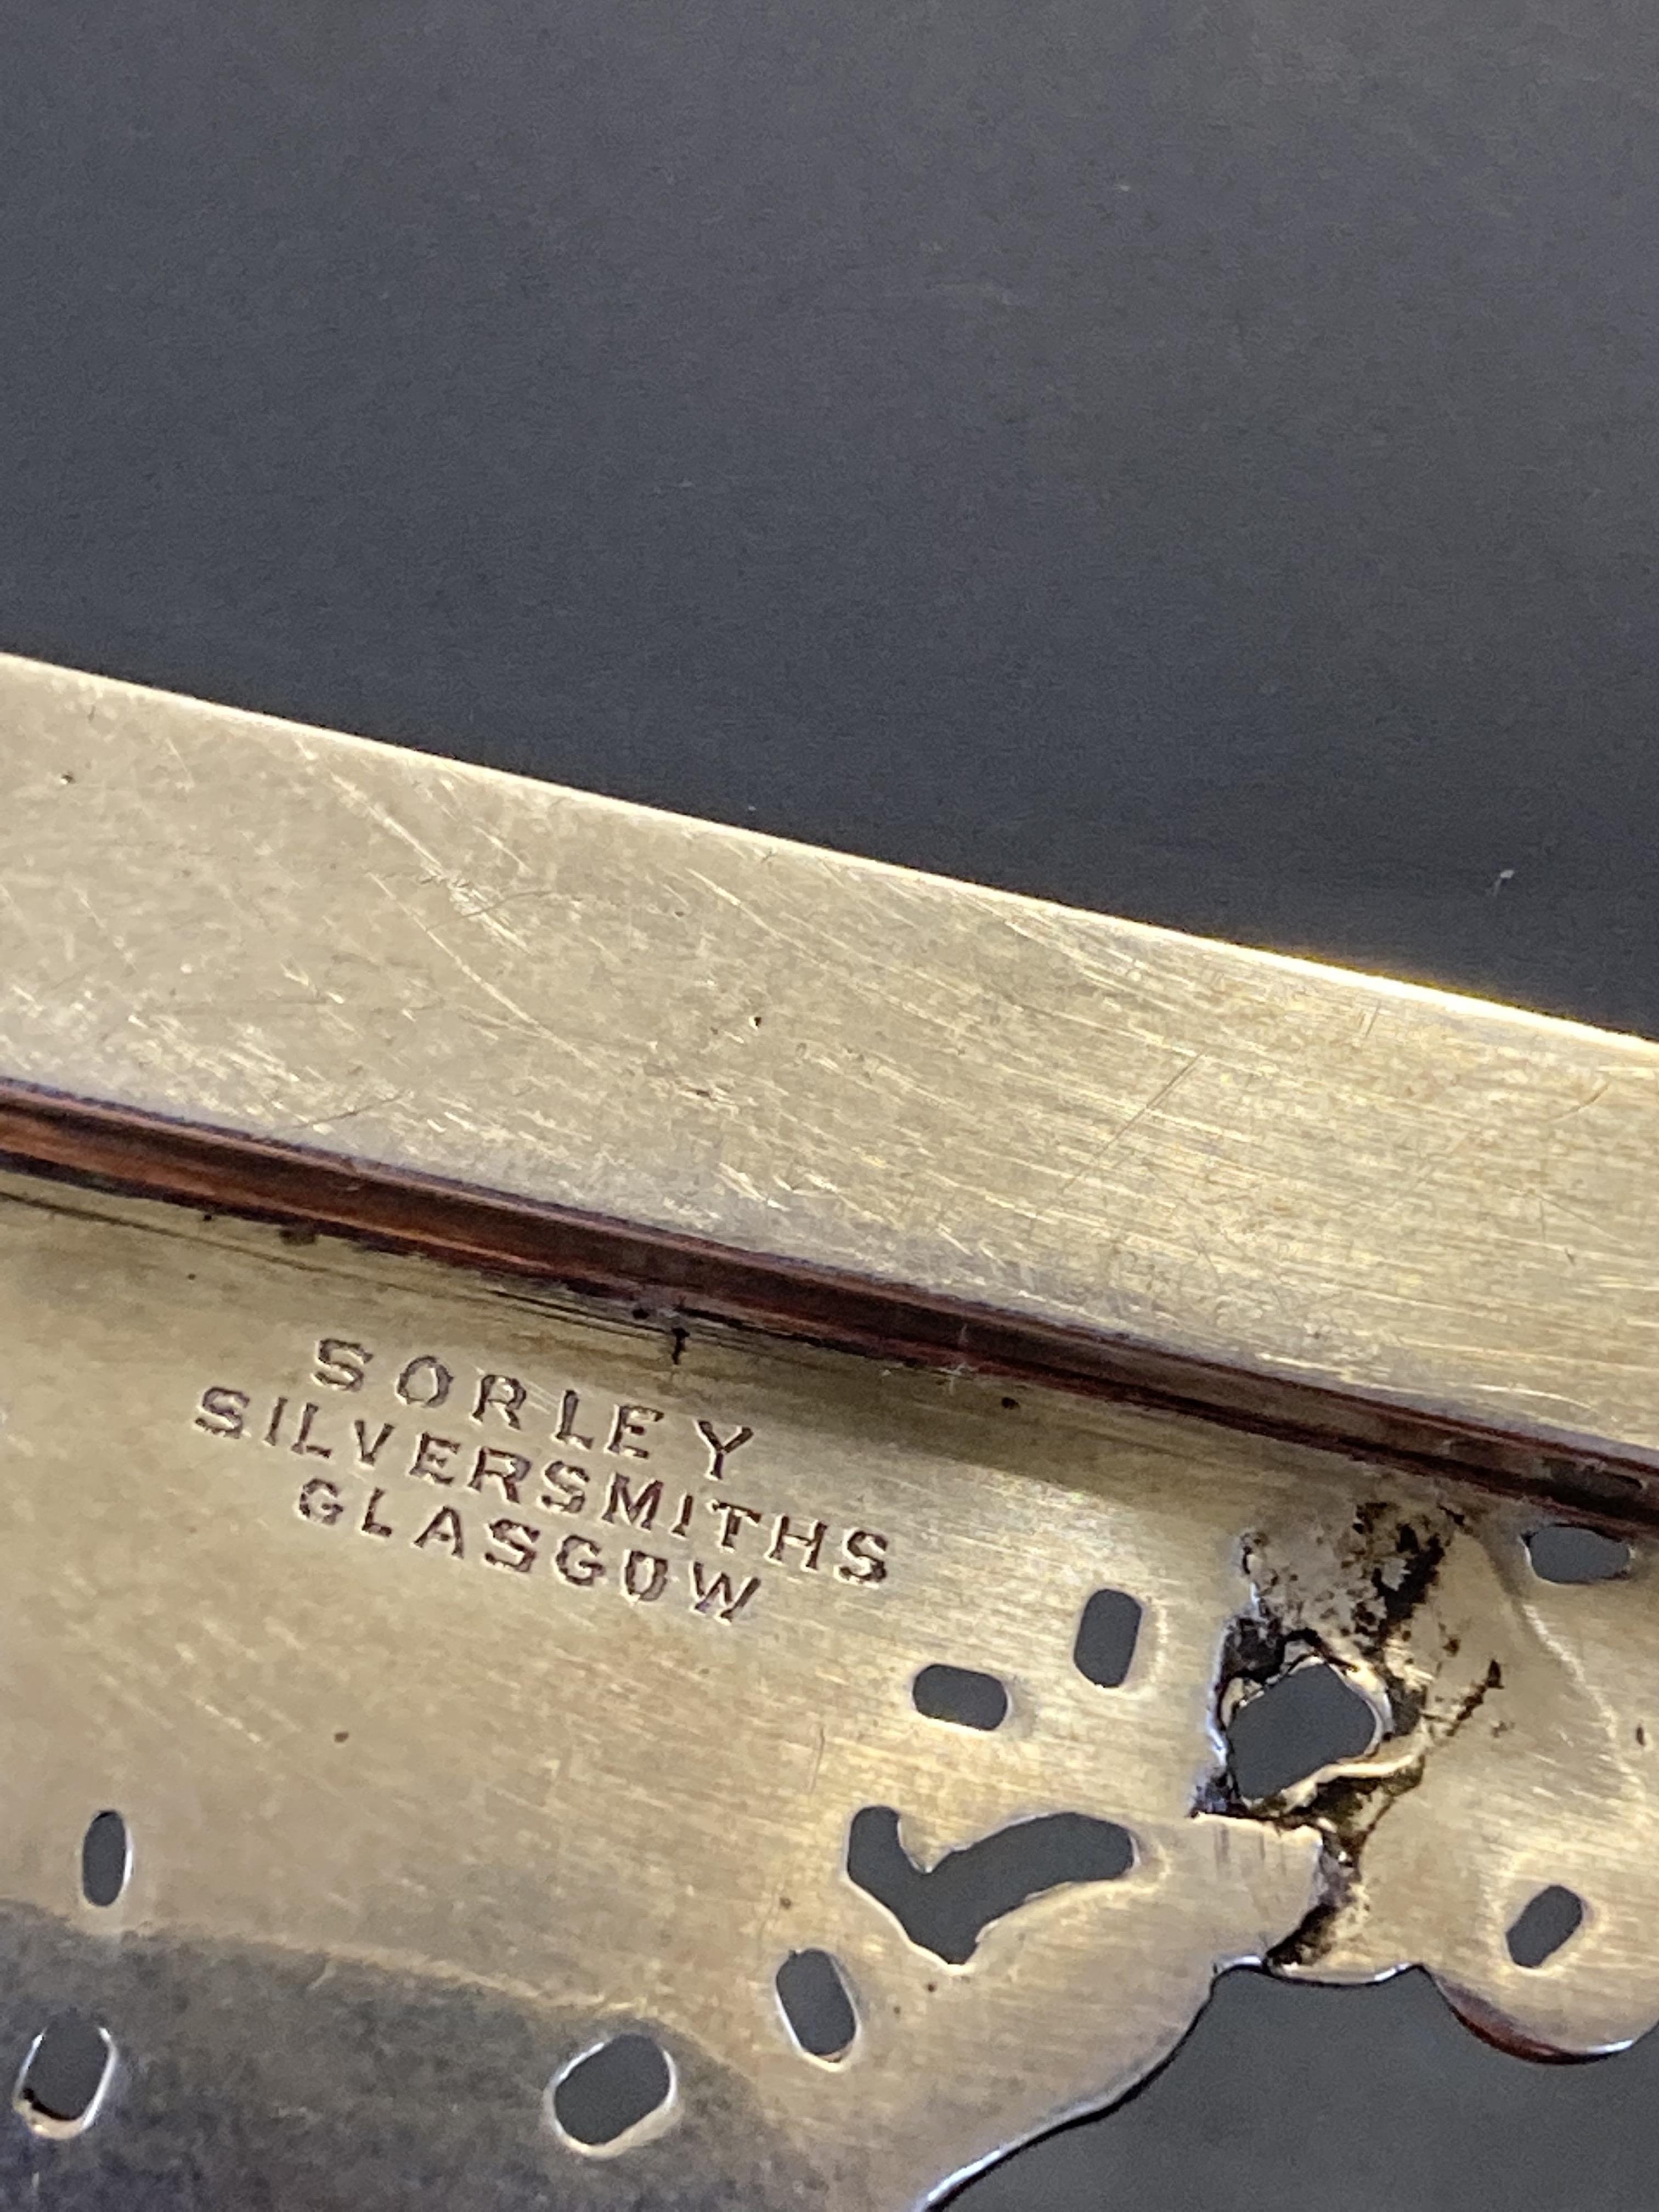 * Mirrors. Pair of Scottish silver hand mirrors by R & W Sorley, Glasgow, 1894 - Image 5 of 10